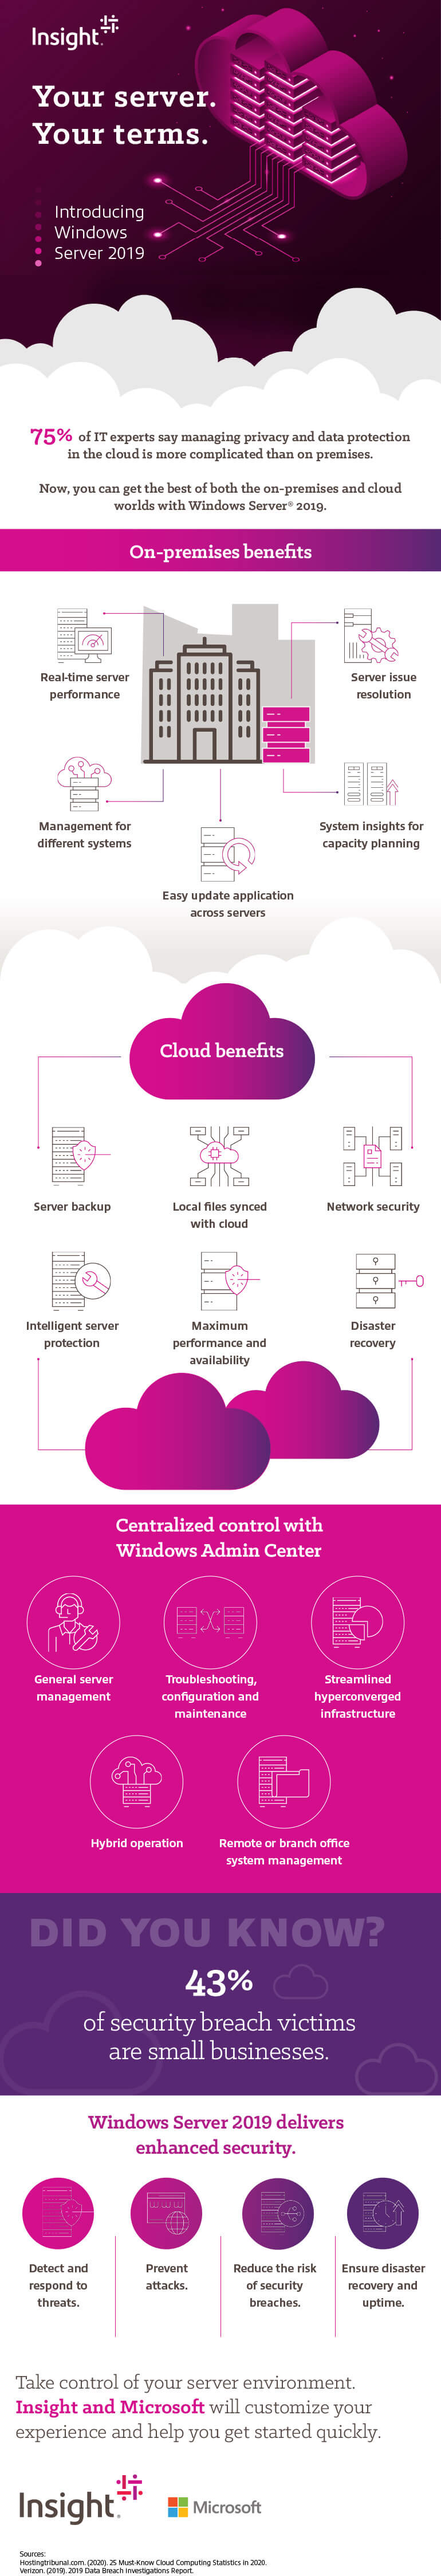 Your Server Your Way: Windows Server 2019 infographic as transcribed below